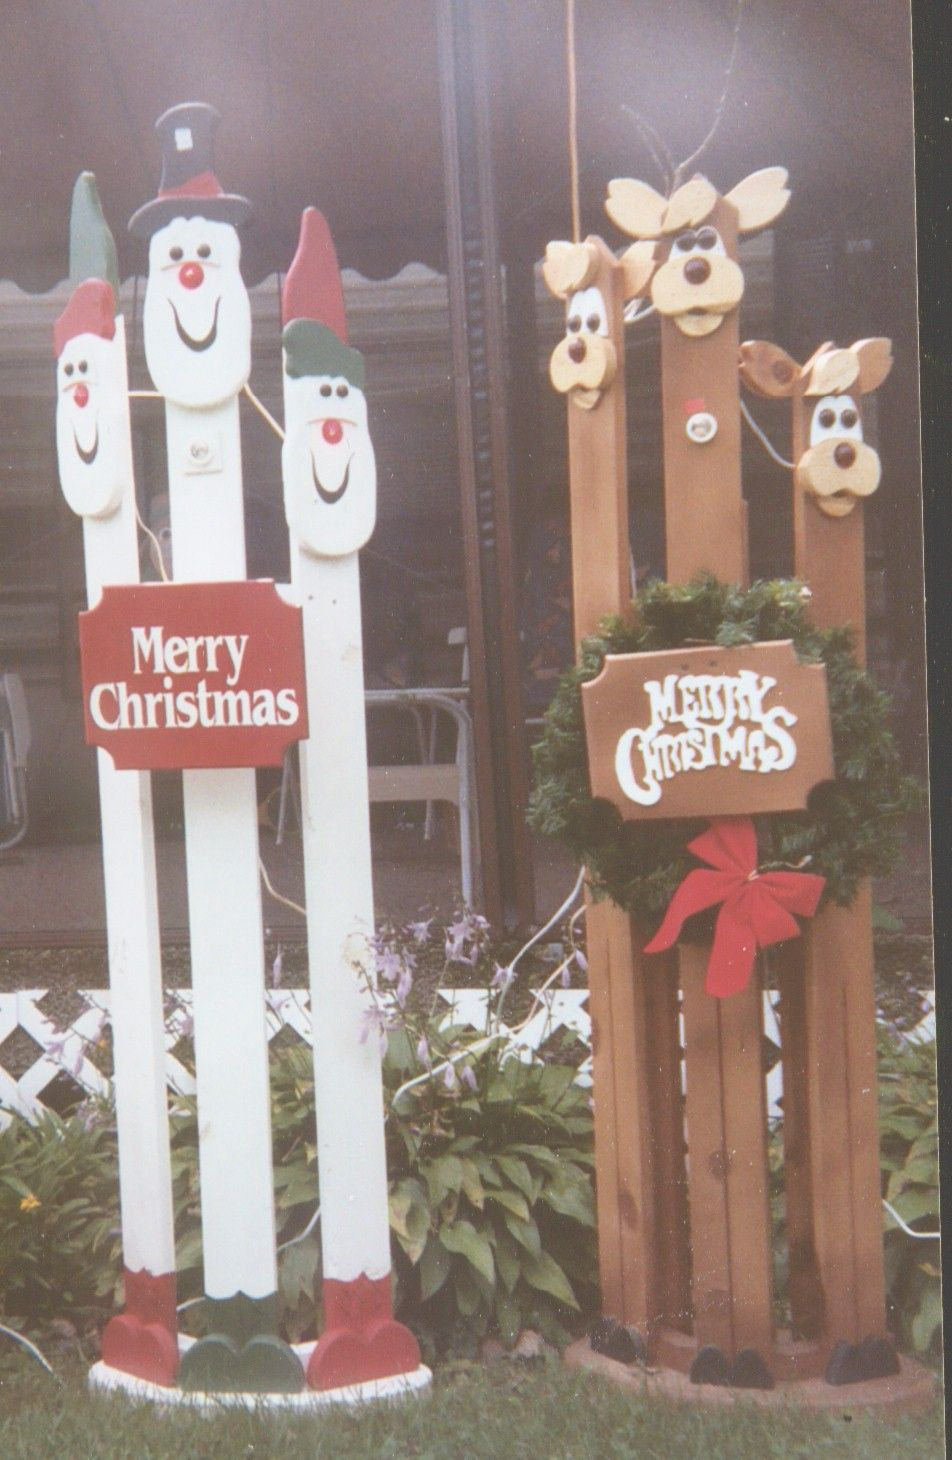 Pictures of crafted wooden painted christmas decorations for Holiday lawn decorations